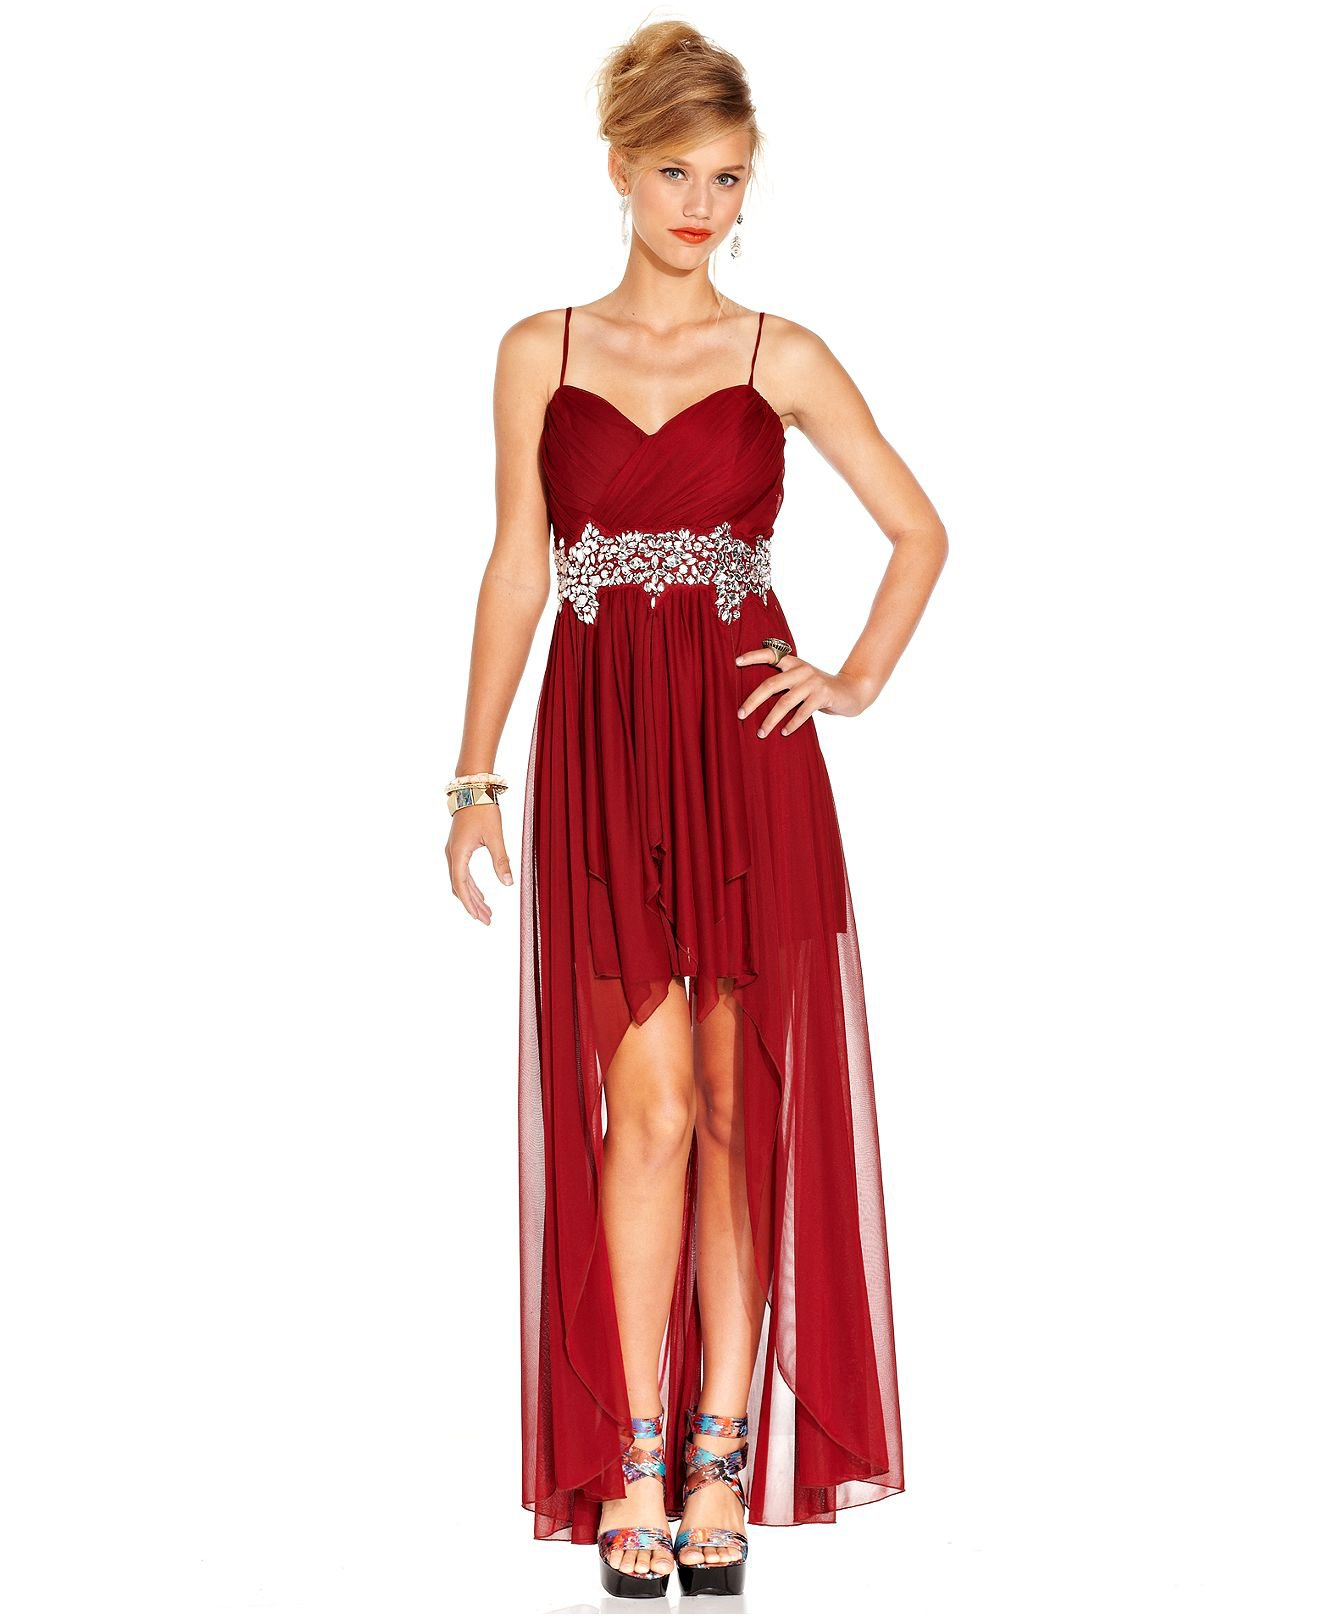 Evening Dresses For Rent - Page 143 of 513 - Party Dresses Boutiques